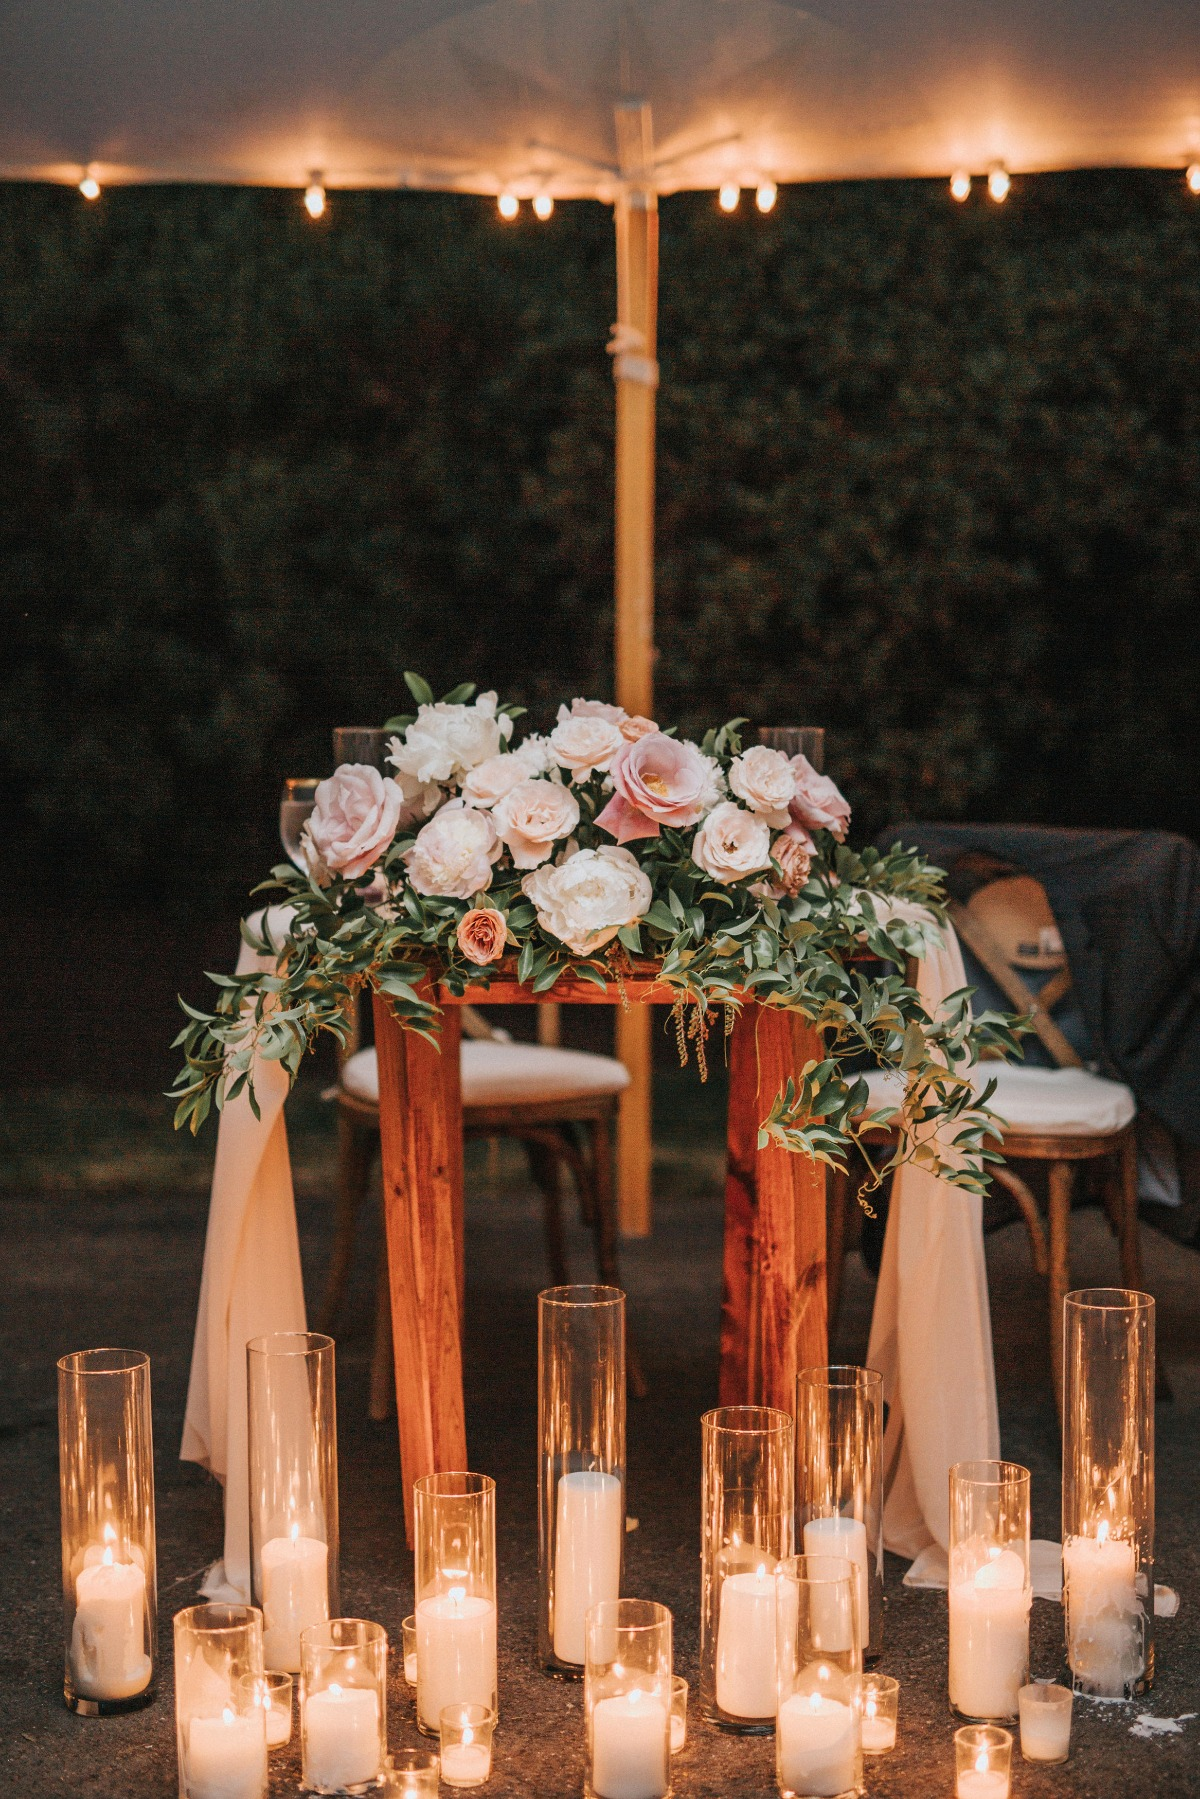 Sweetheart table and candles